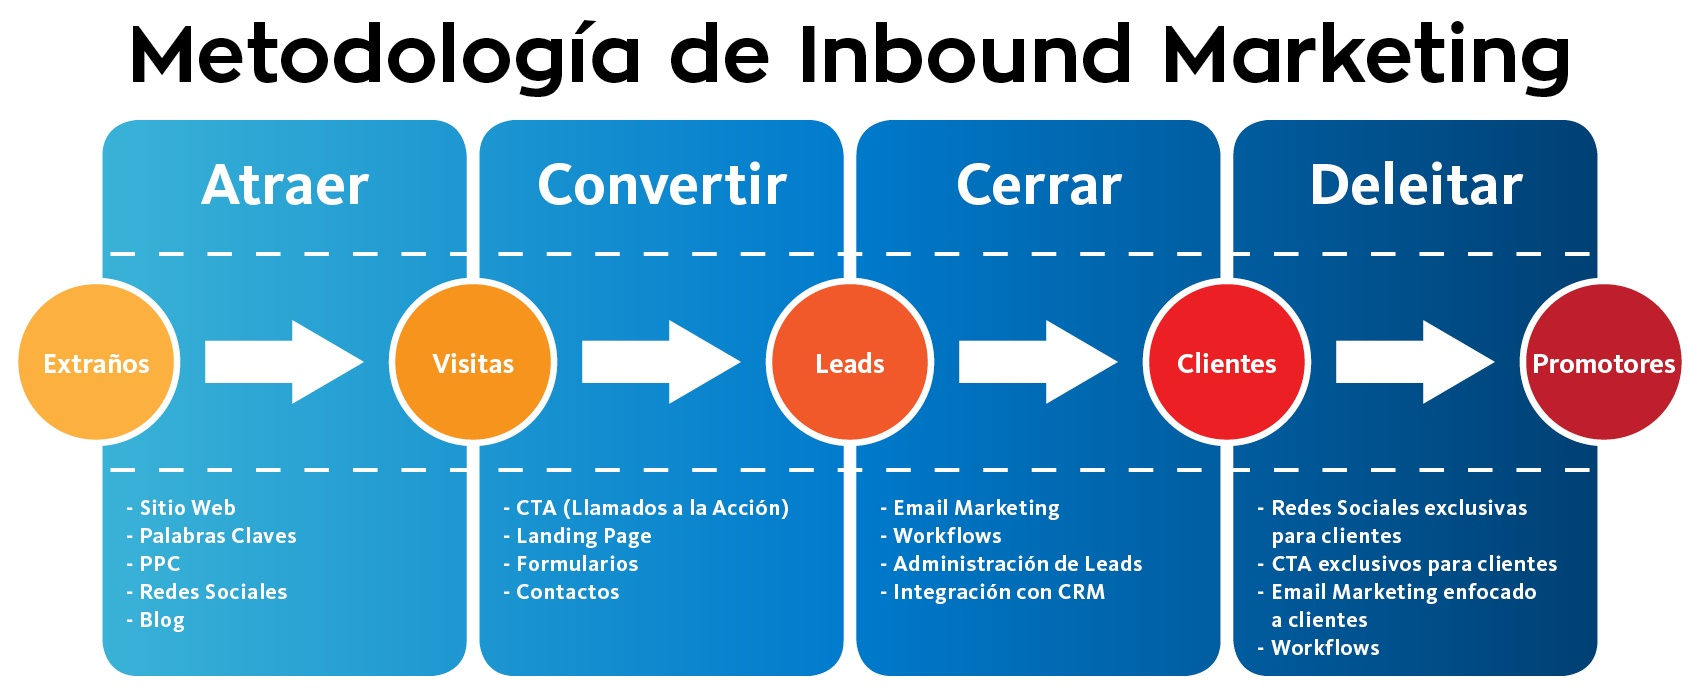 13_ABRIL_QUE_SI_ES_Y_QUE_NO_ES_INBOUND_MARKETING_GRAFICO.jpg